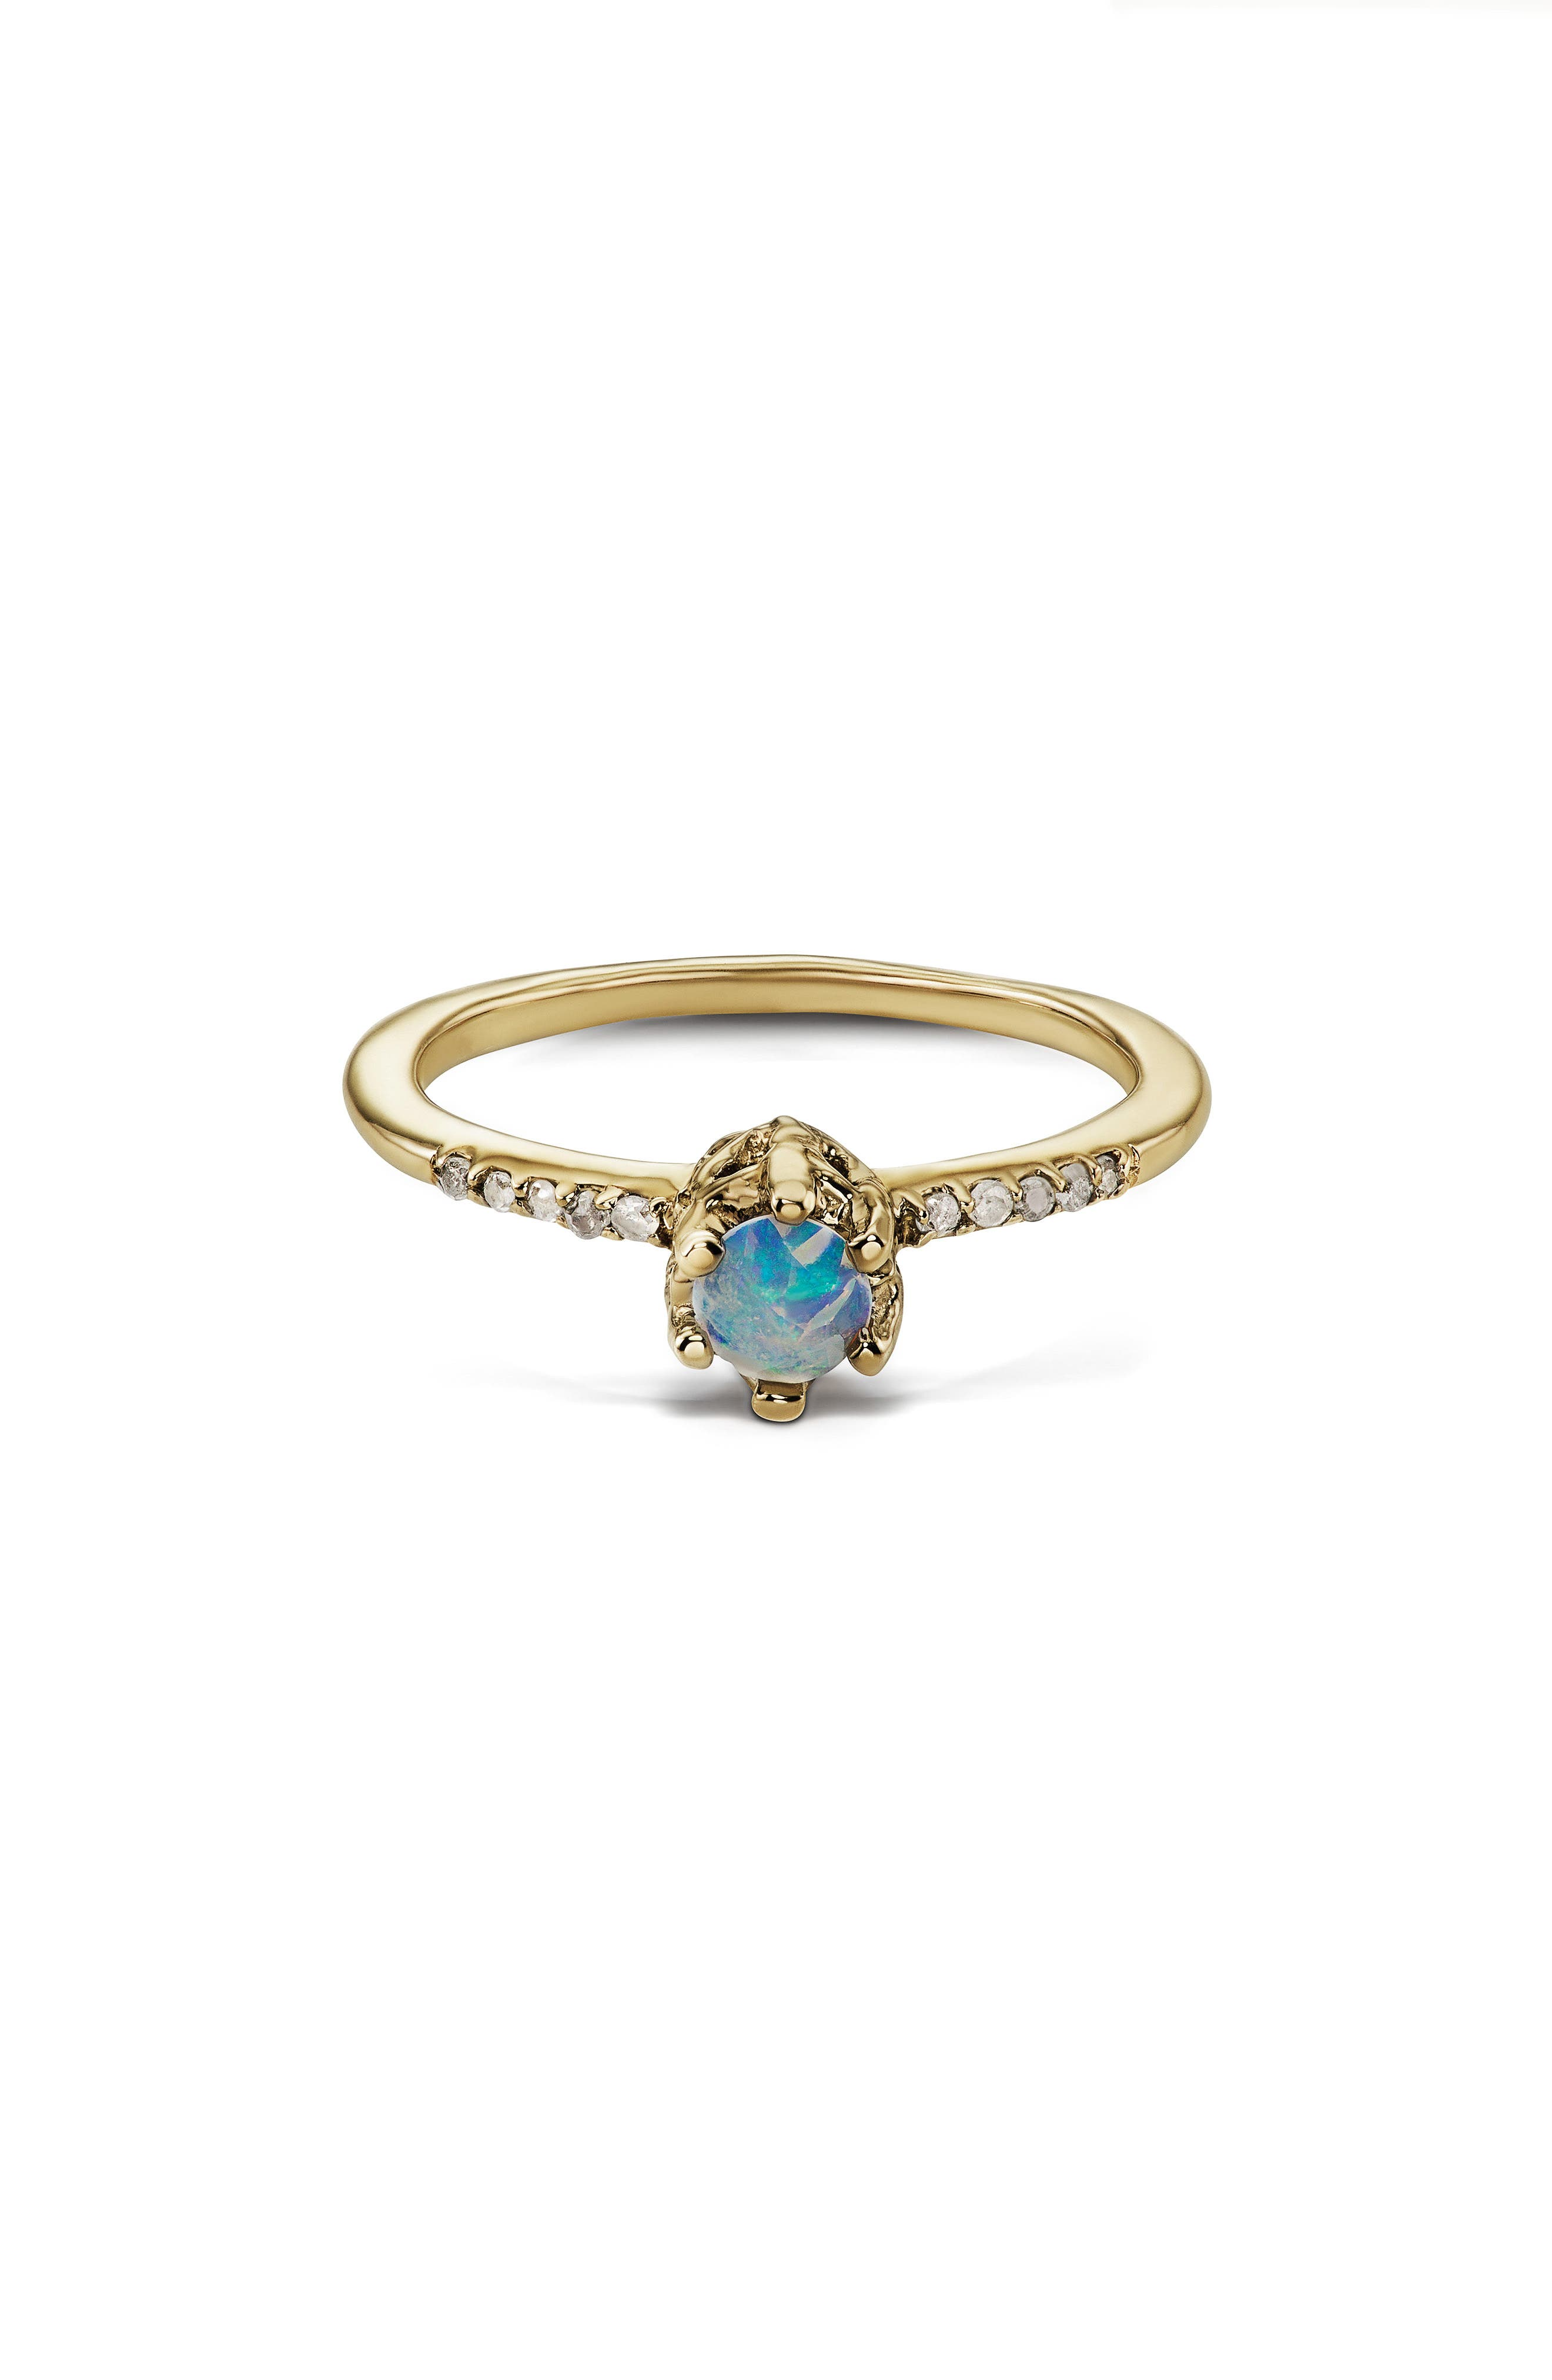 Entity Opal & Diamond Solitaire Ring,                         Main,                         color, YELLOW GOLD/ OPAL